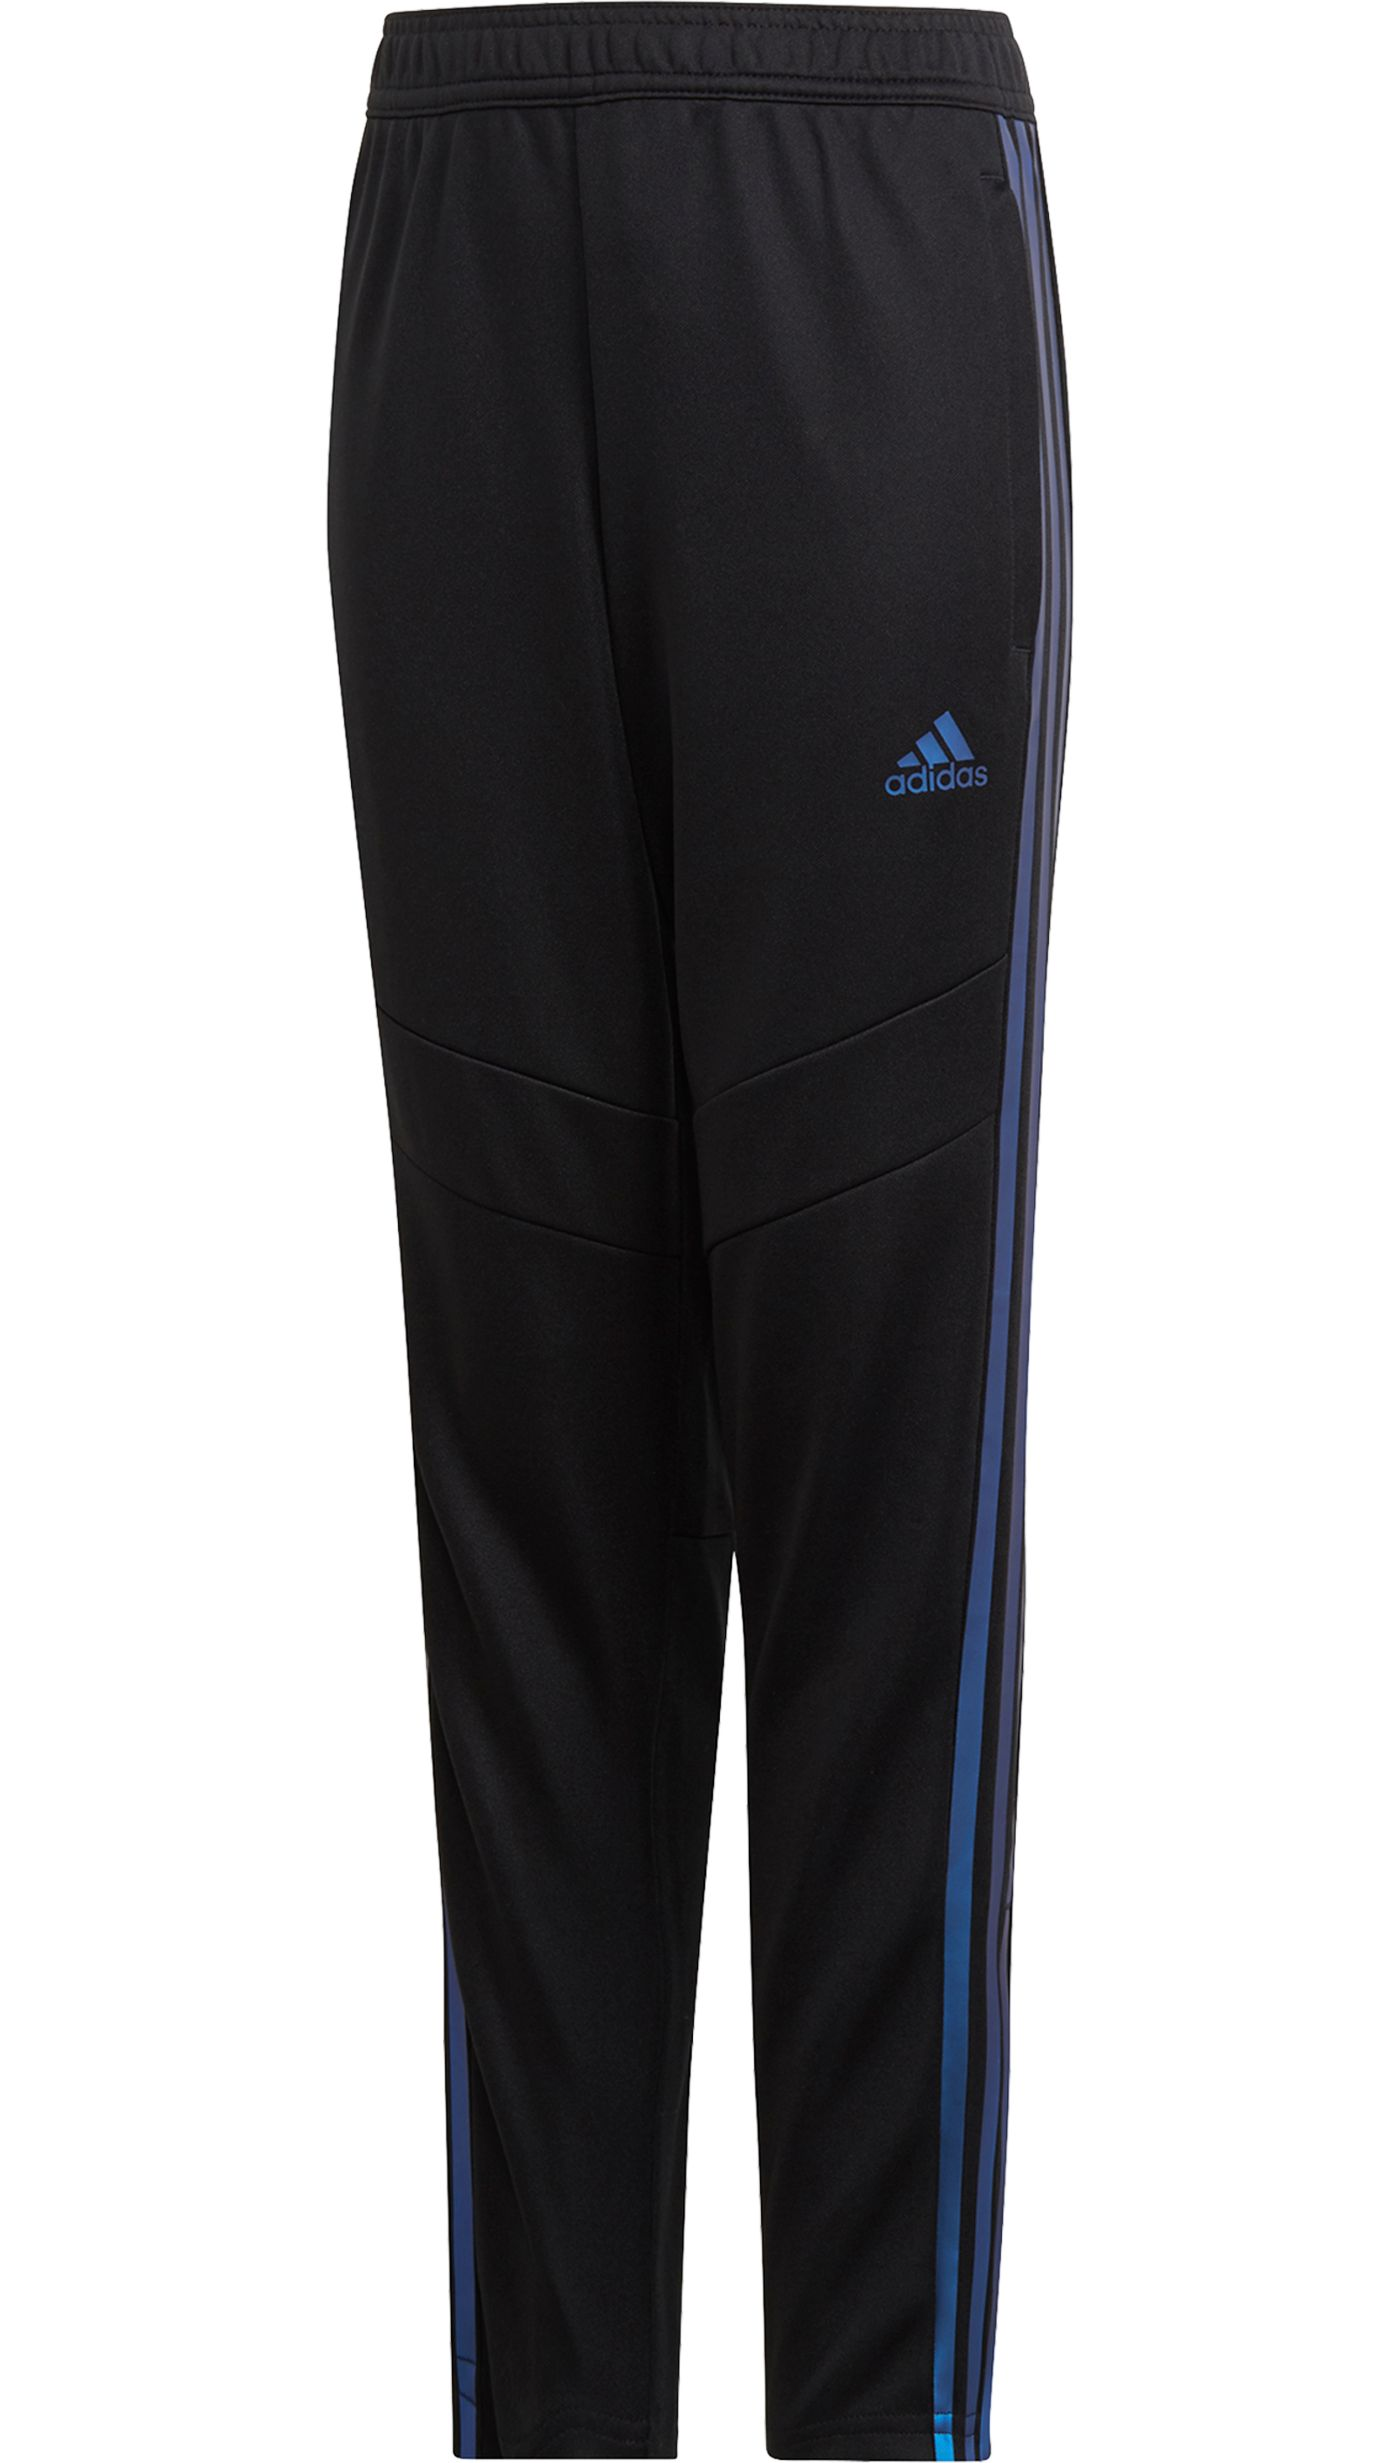 adidas Youth Metallic Tiro 19 Training Pants